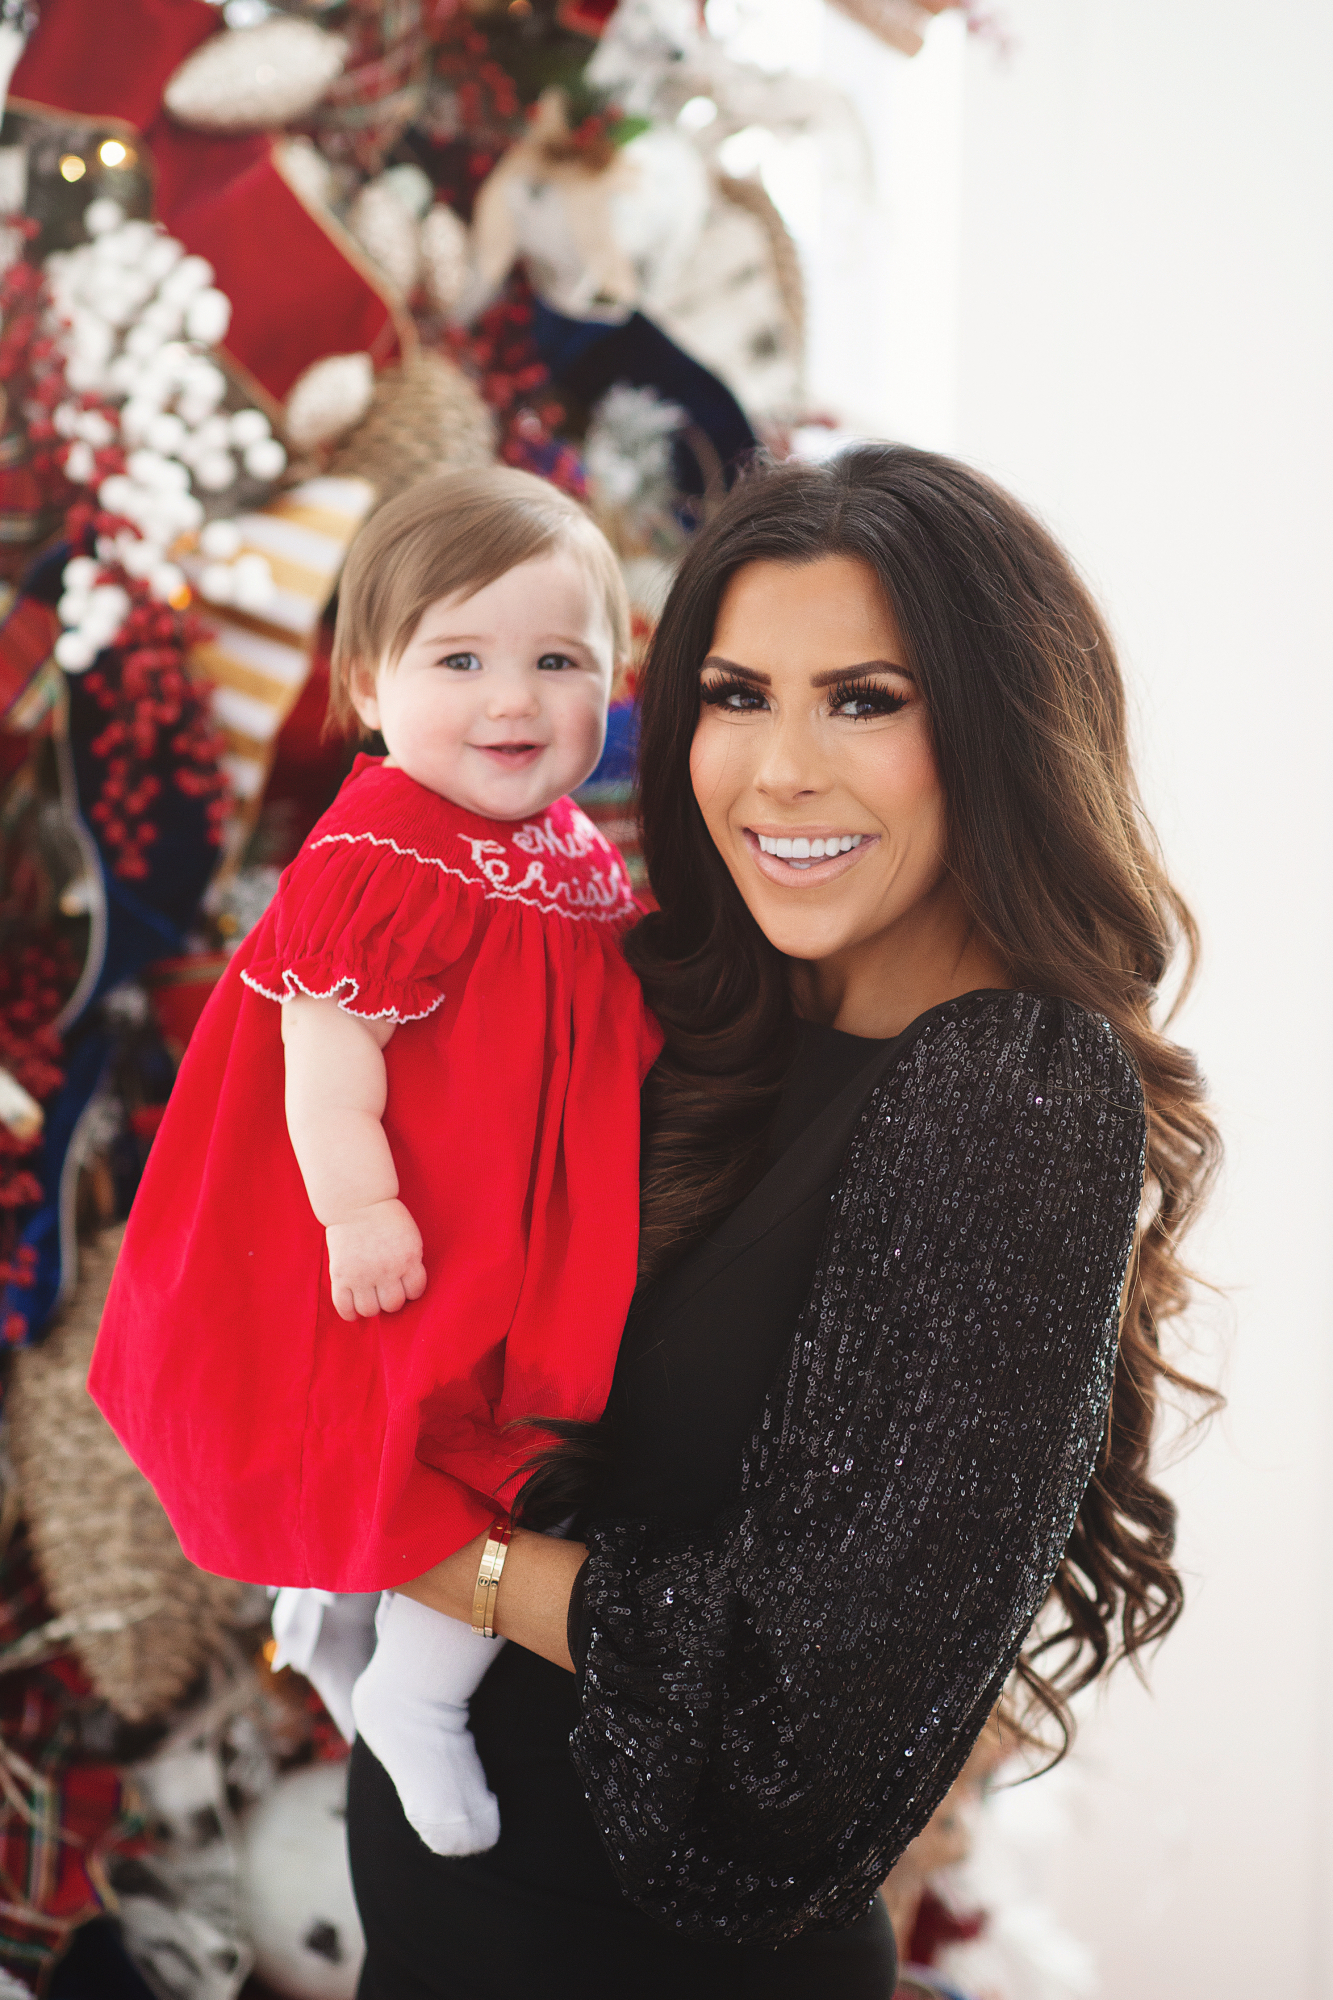 family Christmas card outfit inspiration, smocked Christmas dress baby, baby boy fashion Christmas, pinterest Christmas tree decor, shop hello holidays, Emily Gemma, the sweetest thing blog | Merry Christmas Wishes To You & Yours🎁❤️🎄 [Our Christmas Card 2019] by popular Oklahoma life and style blog, The Sweetest Thing: image a mom holding her baby daughter in front of their Christmas tree and wearing Smocked Auctions MERRY CHRISTMAS SMOCKED BISHOP RED CORDUROY dress, CHRISTIAN LOUBOUTIN So Kate 120 suede pumps, and Nordstrom Eliza J Long Sequin Sleeve Sheath Dress.